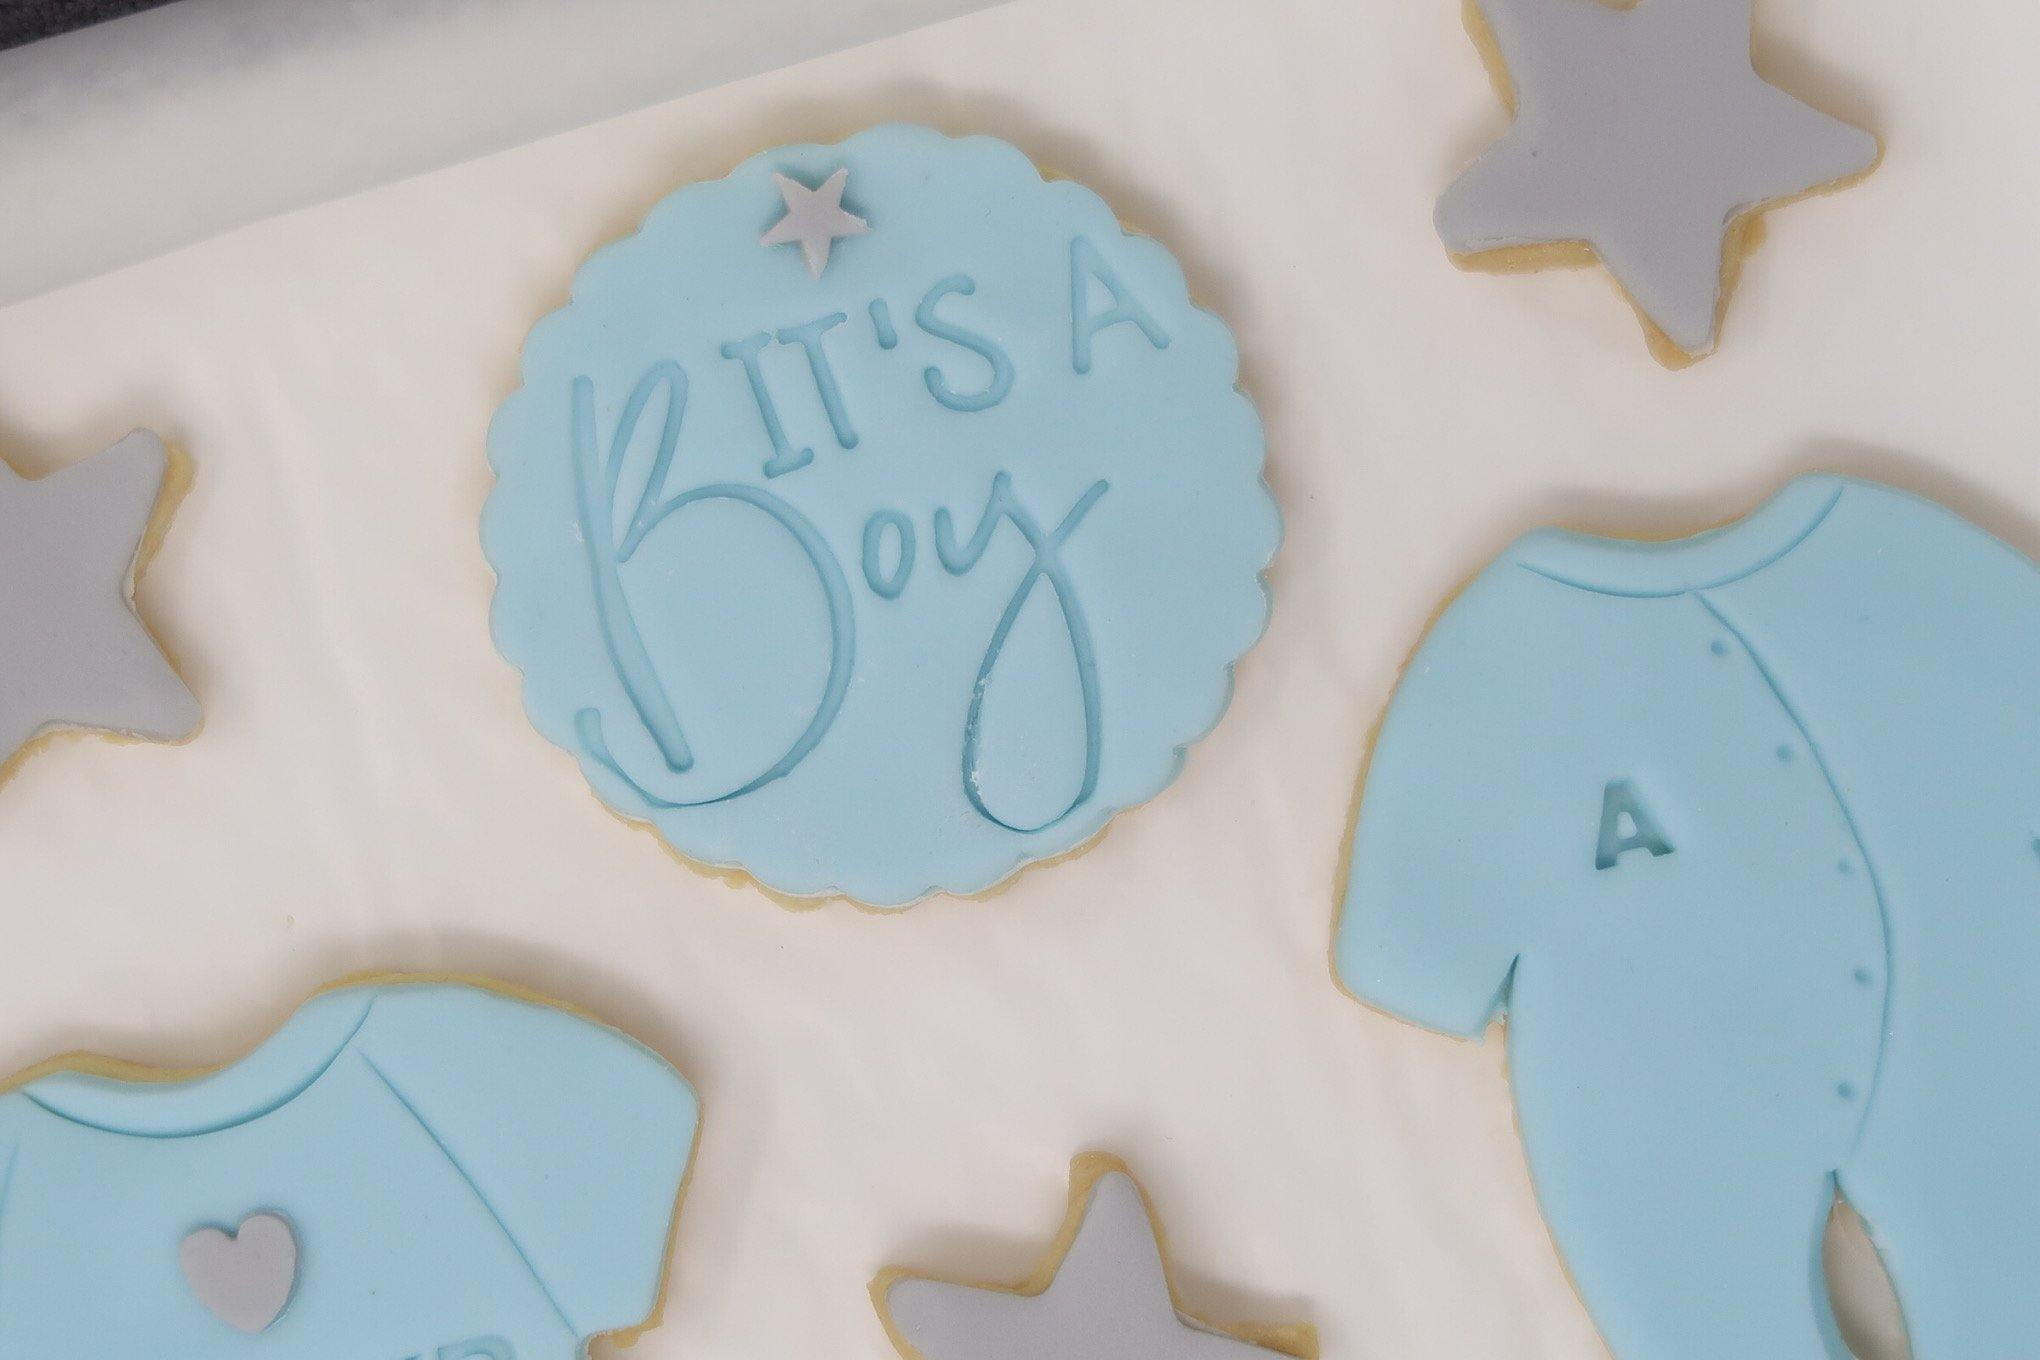 It's a boy cookies set in blue and grey